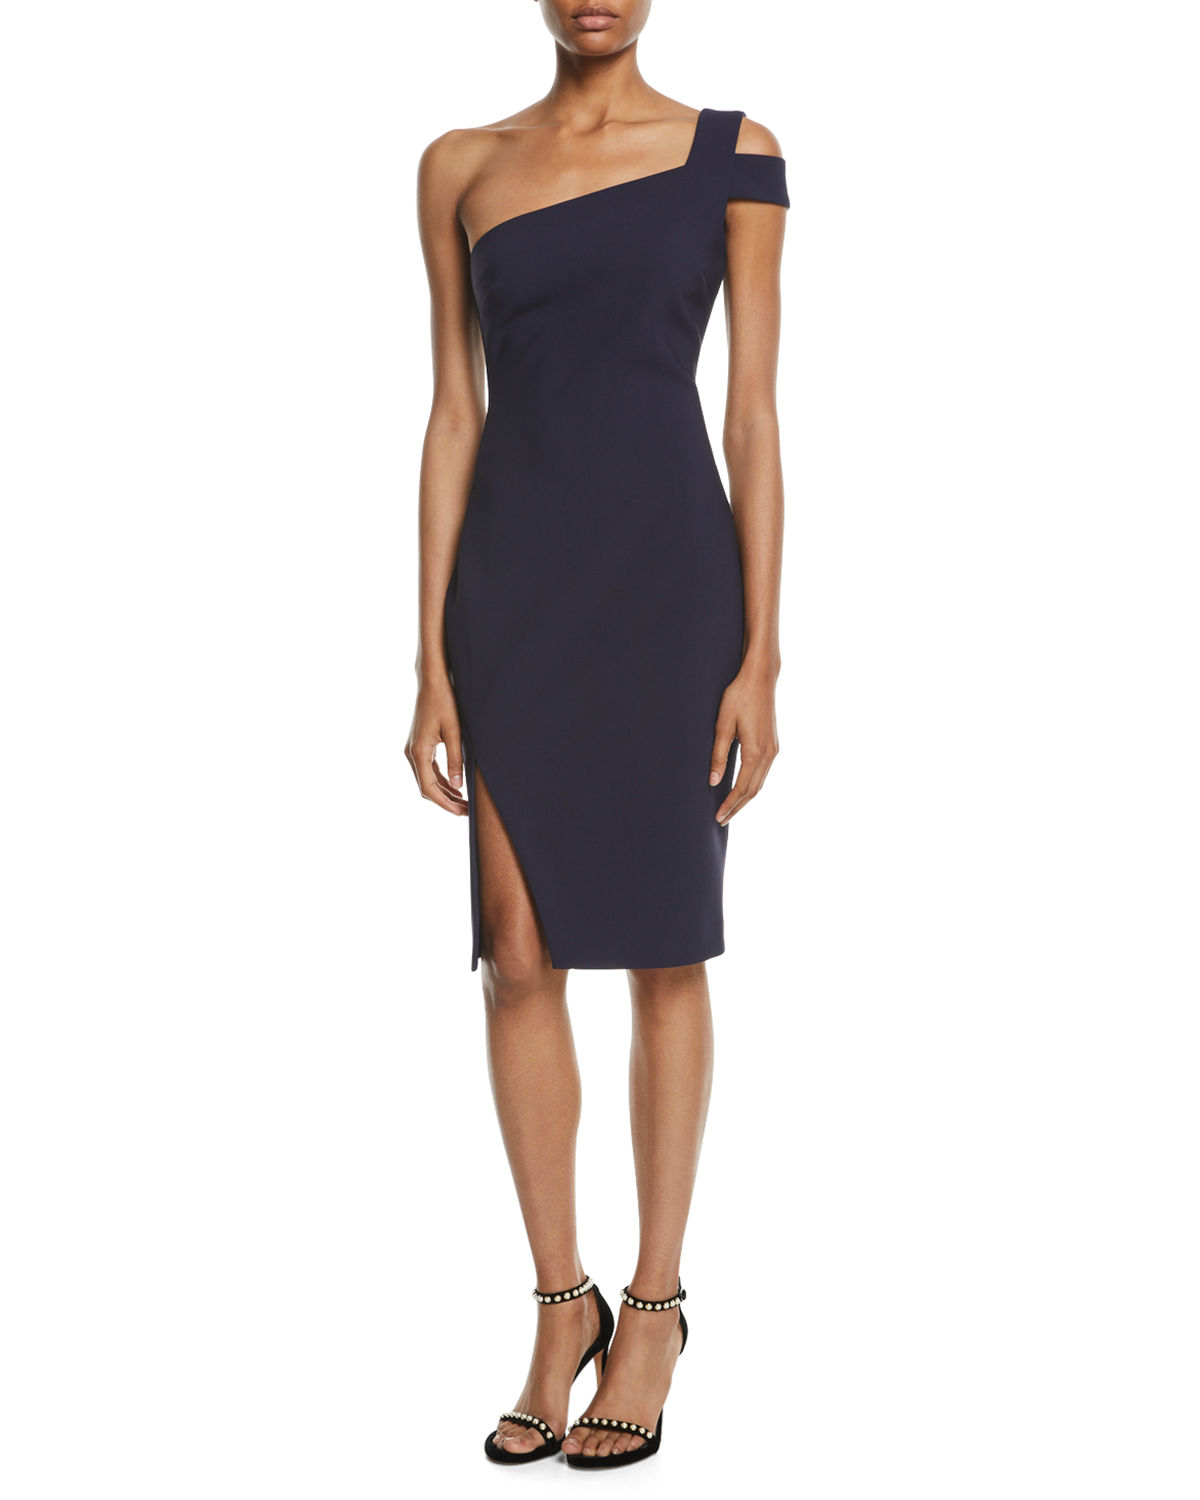 Likely Packard One-Shoulder Cocktail Dress | Neiman Marcus